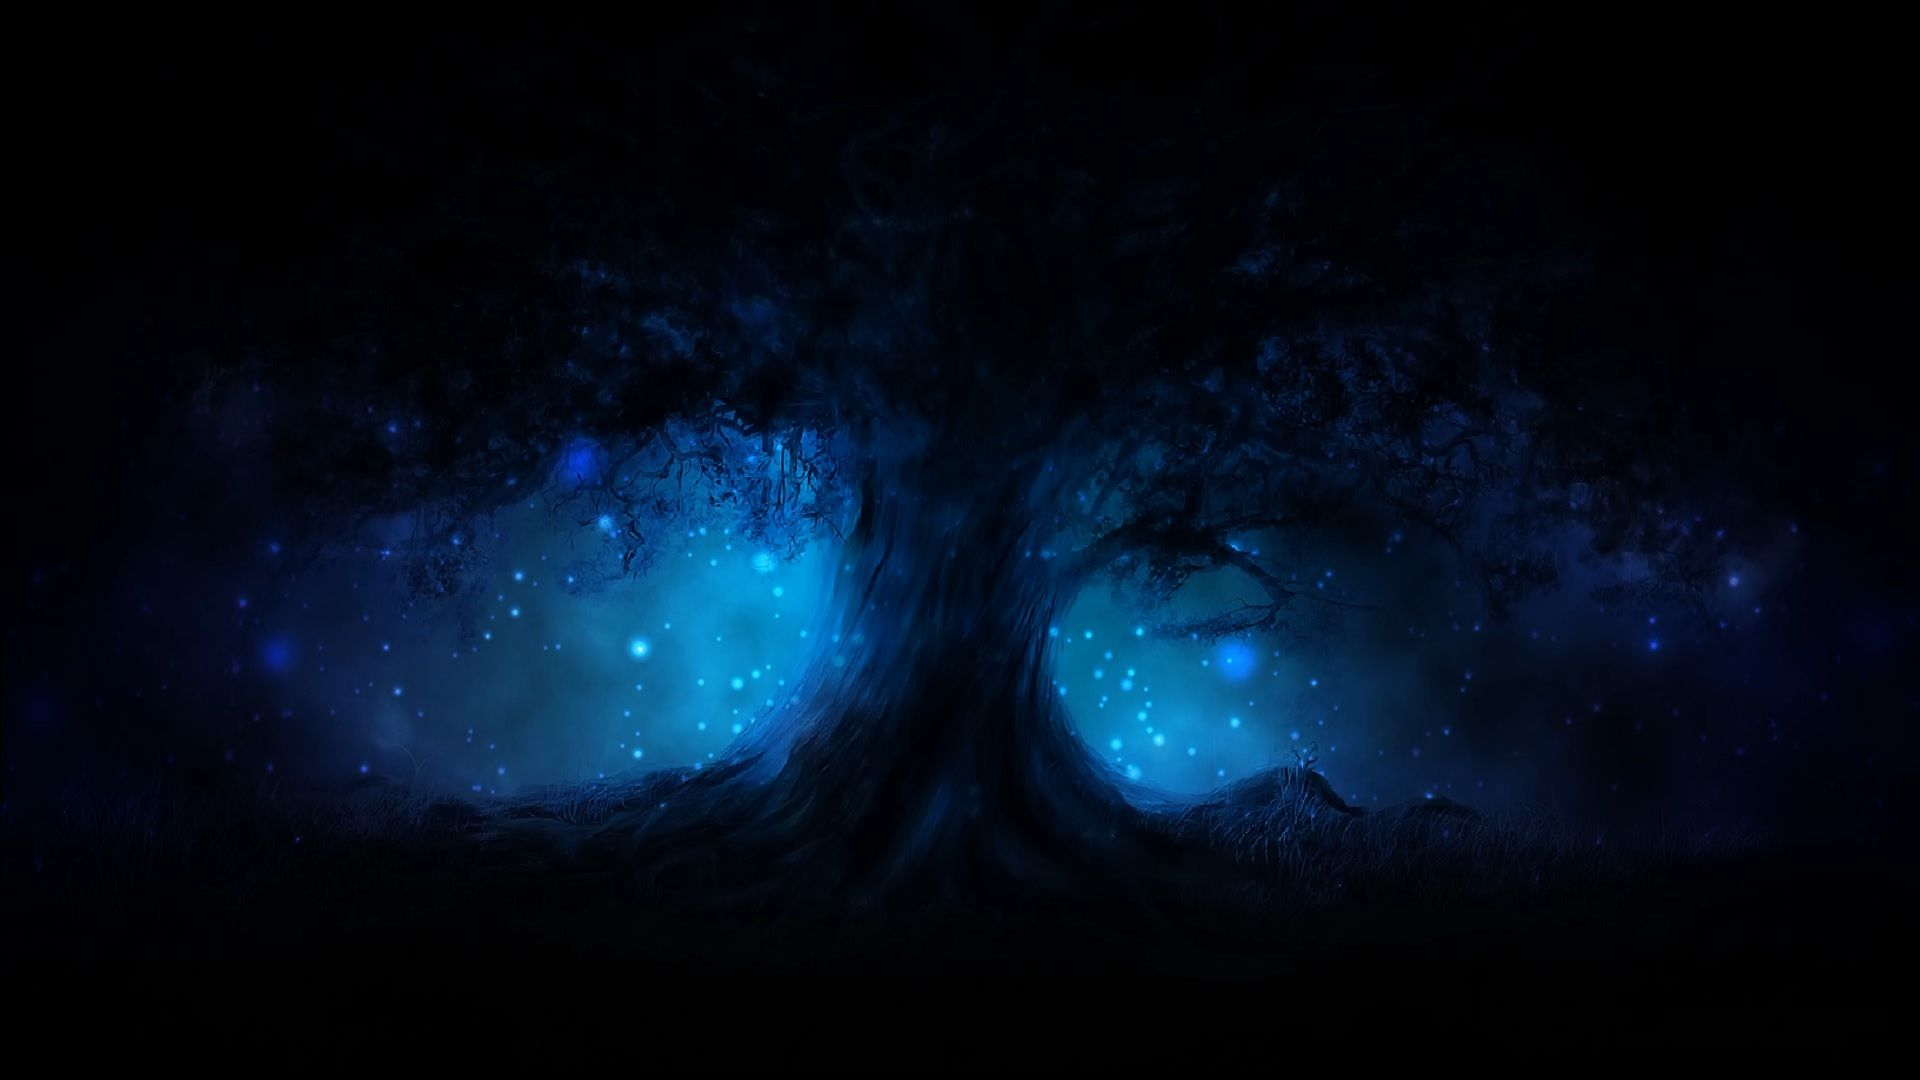 Black and Blue Abstract HD Widescreen Wallpaper 281   Amazing 1920x1080